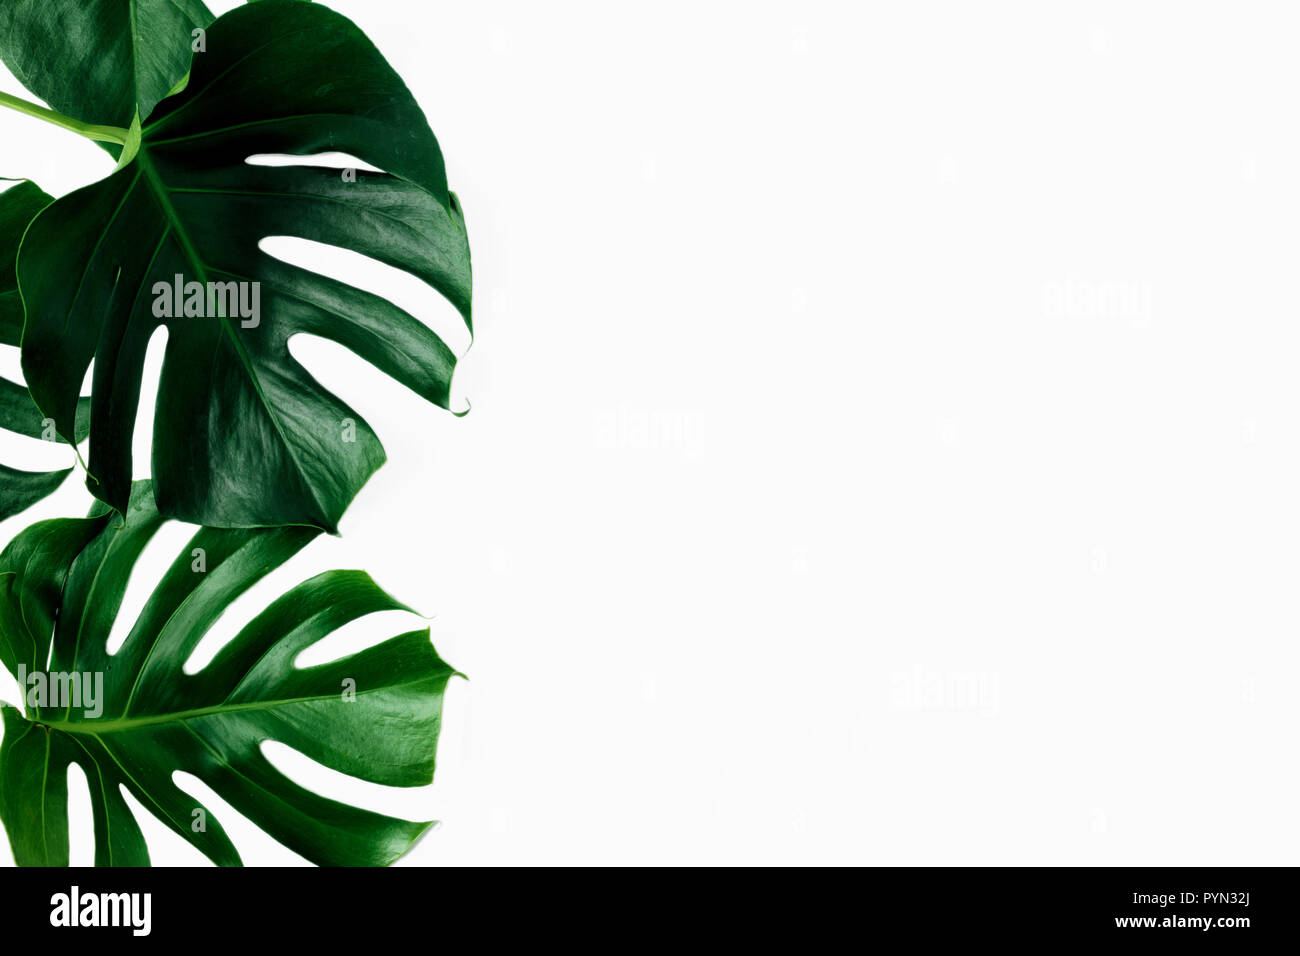 Tropical Leaves Monstera On White Background With Copy Space Top View Flat Lay Stock Photo Alamy .tropical leaves tropical flowers tropical leaf tropical fruit tropical fish tropical border tropical rainforest tropical background tropical fruits tropical bird tropical beach tropical island tropical birds tropical trees tropical drink tropical flamingo tropical party tropical. https www alamy com tropical leaves monstera on white background with copy space top view flat lay image223583546 html